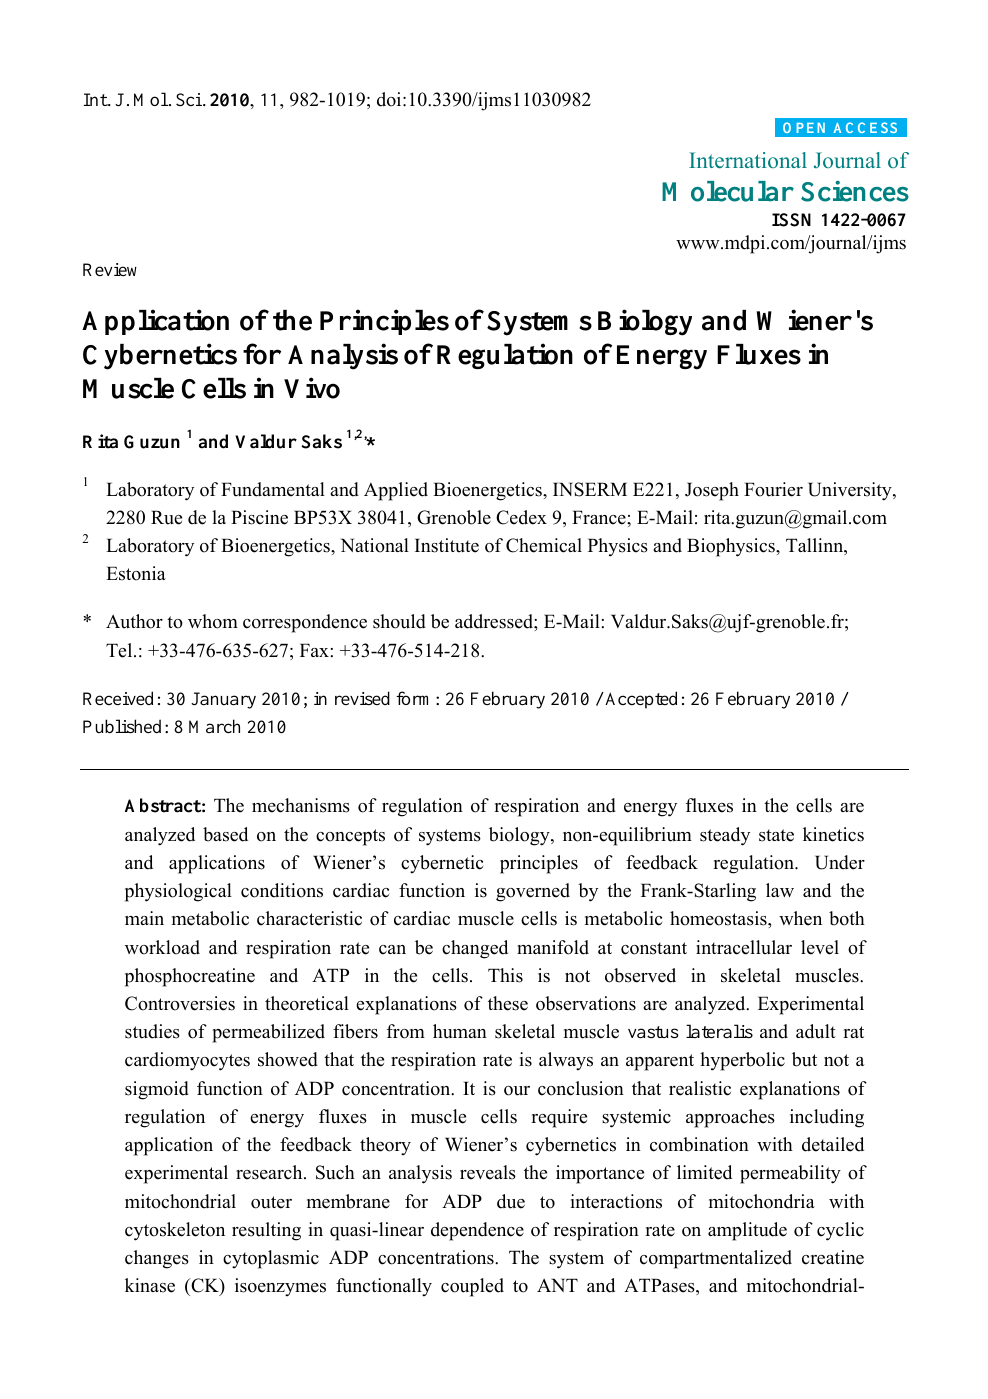 Application Of The Principles Of Systems Biology And Wiener S